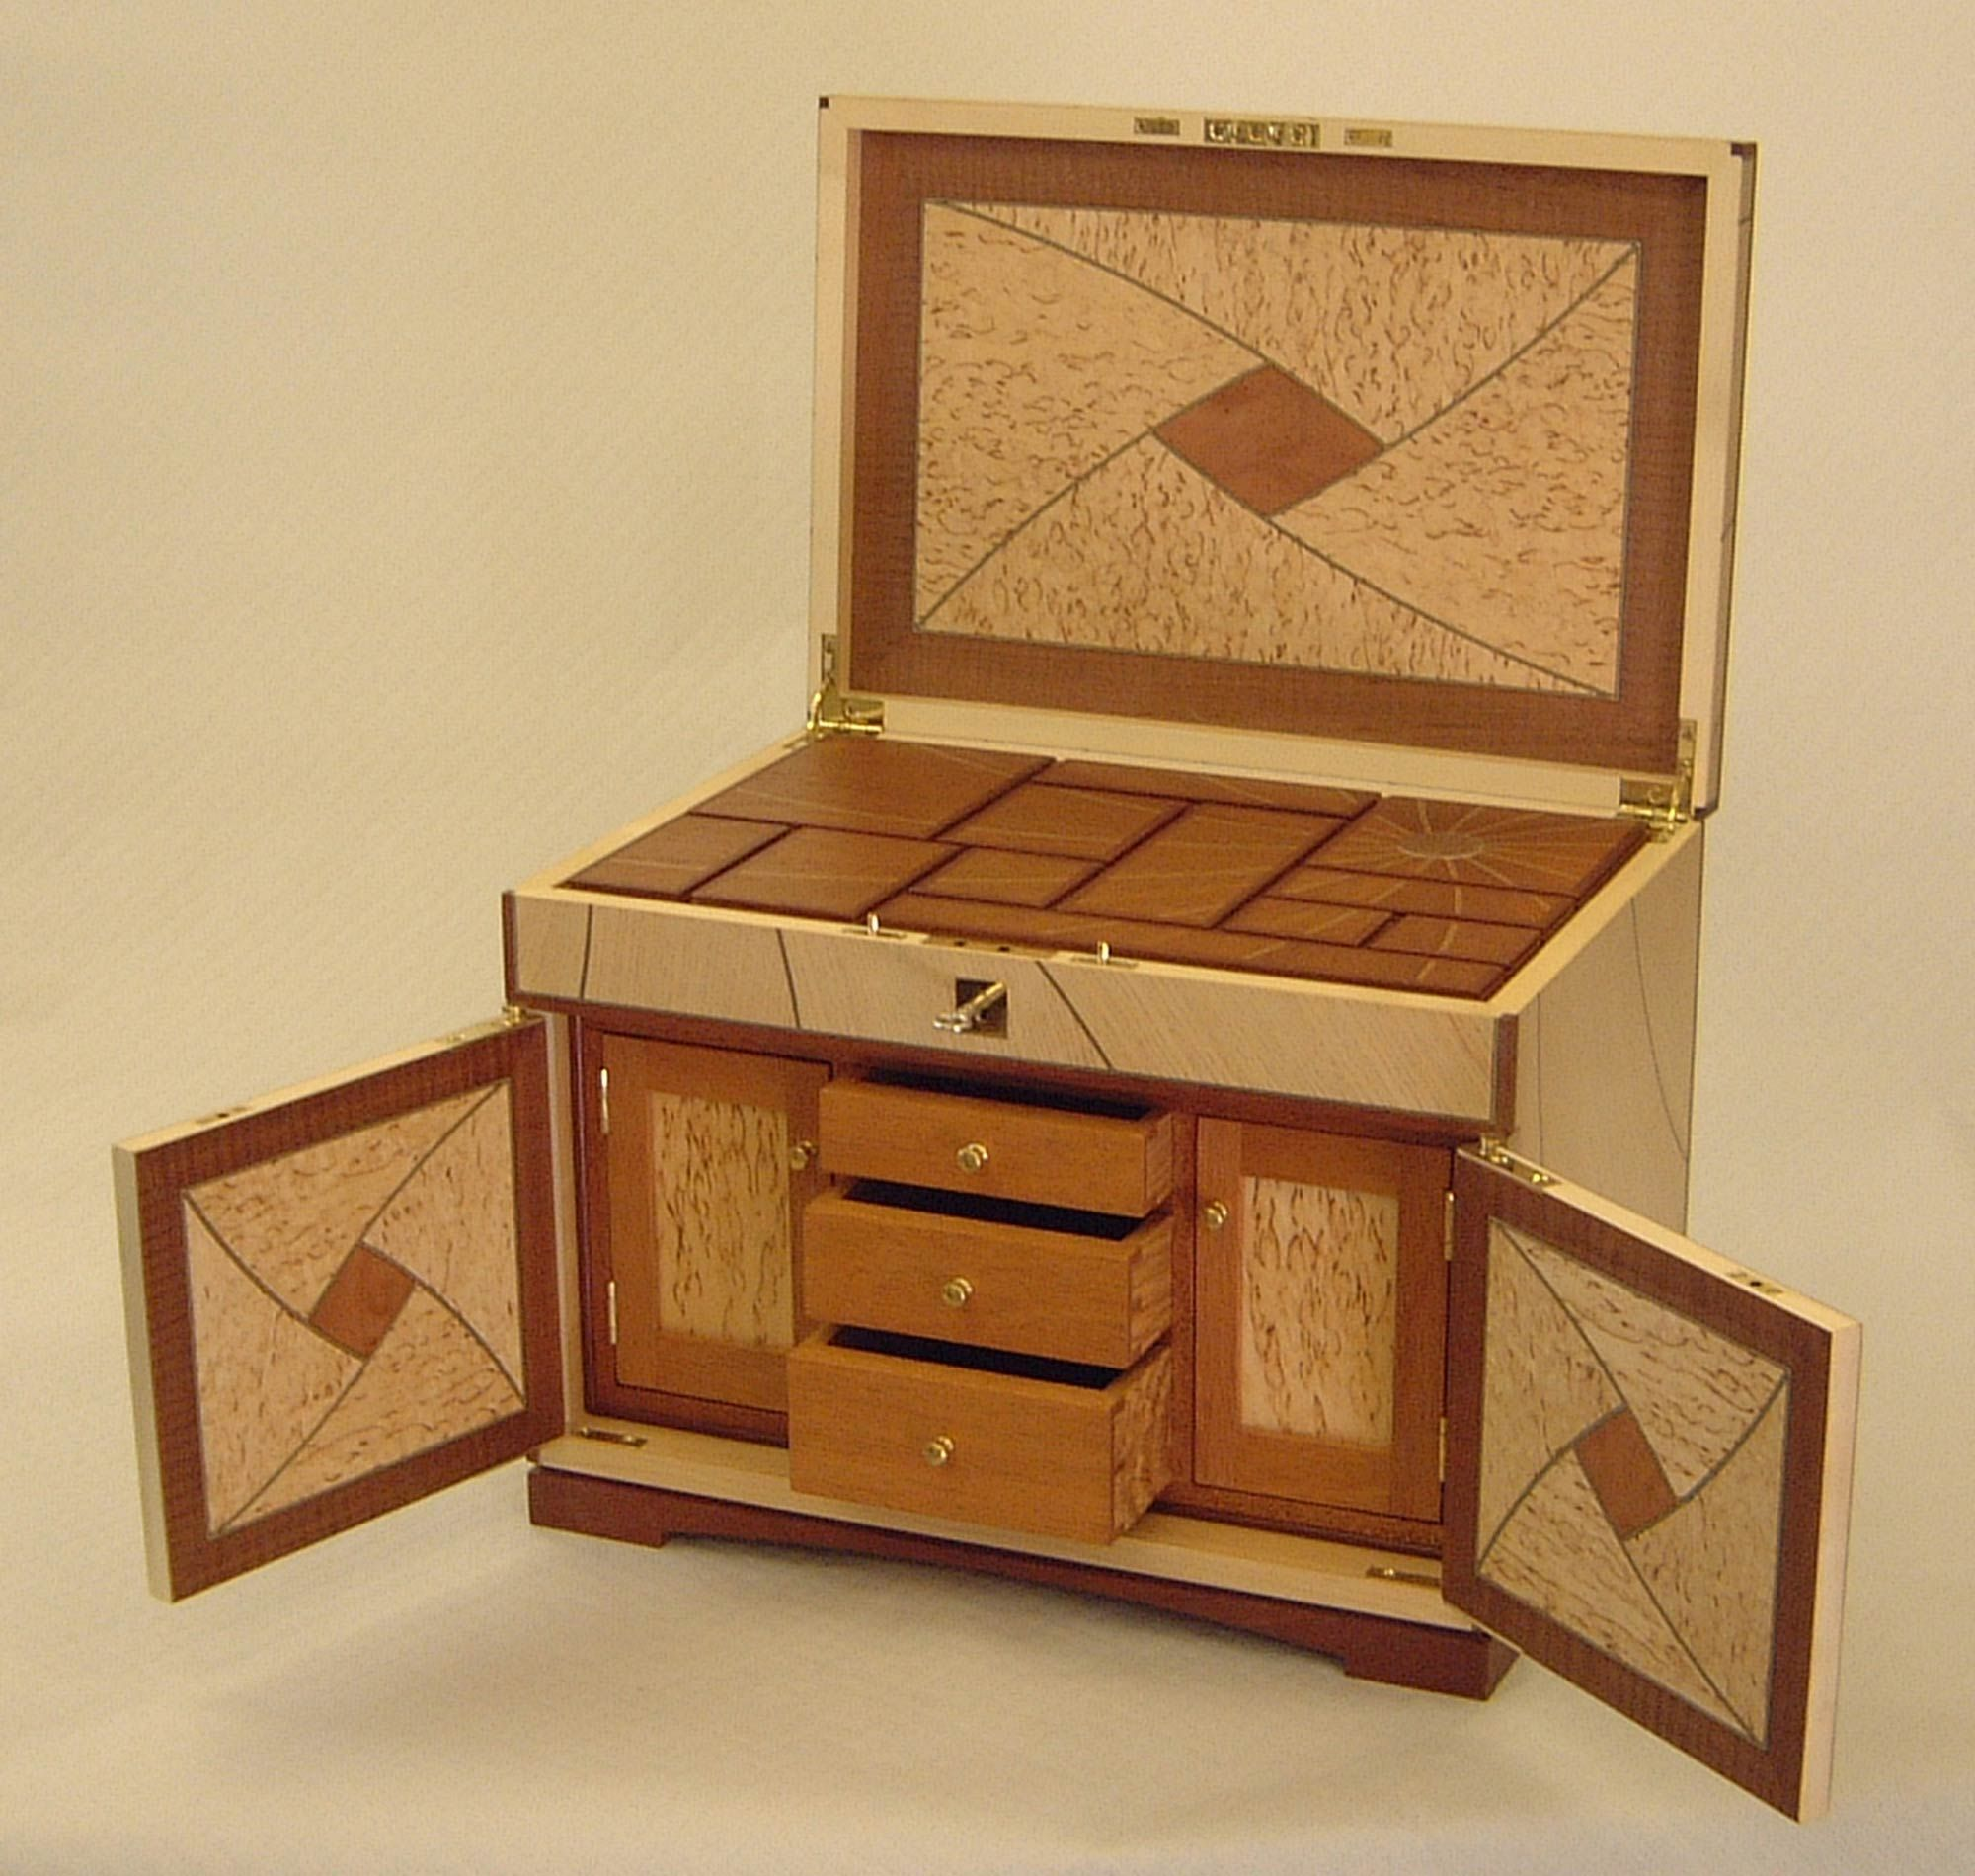 Bench Design Hidden Compartment Jewelry Box Plans Craft Ideas Pinterest Jewelry Box